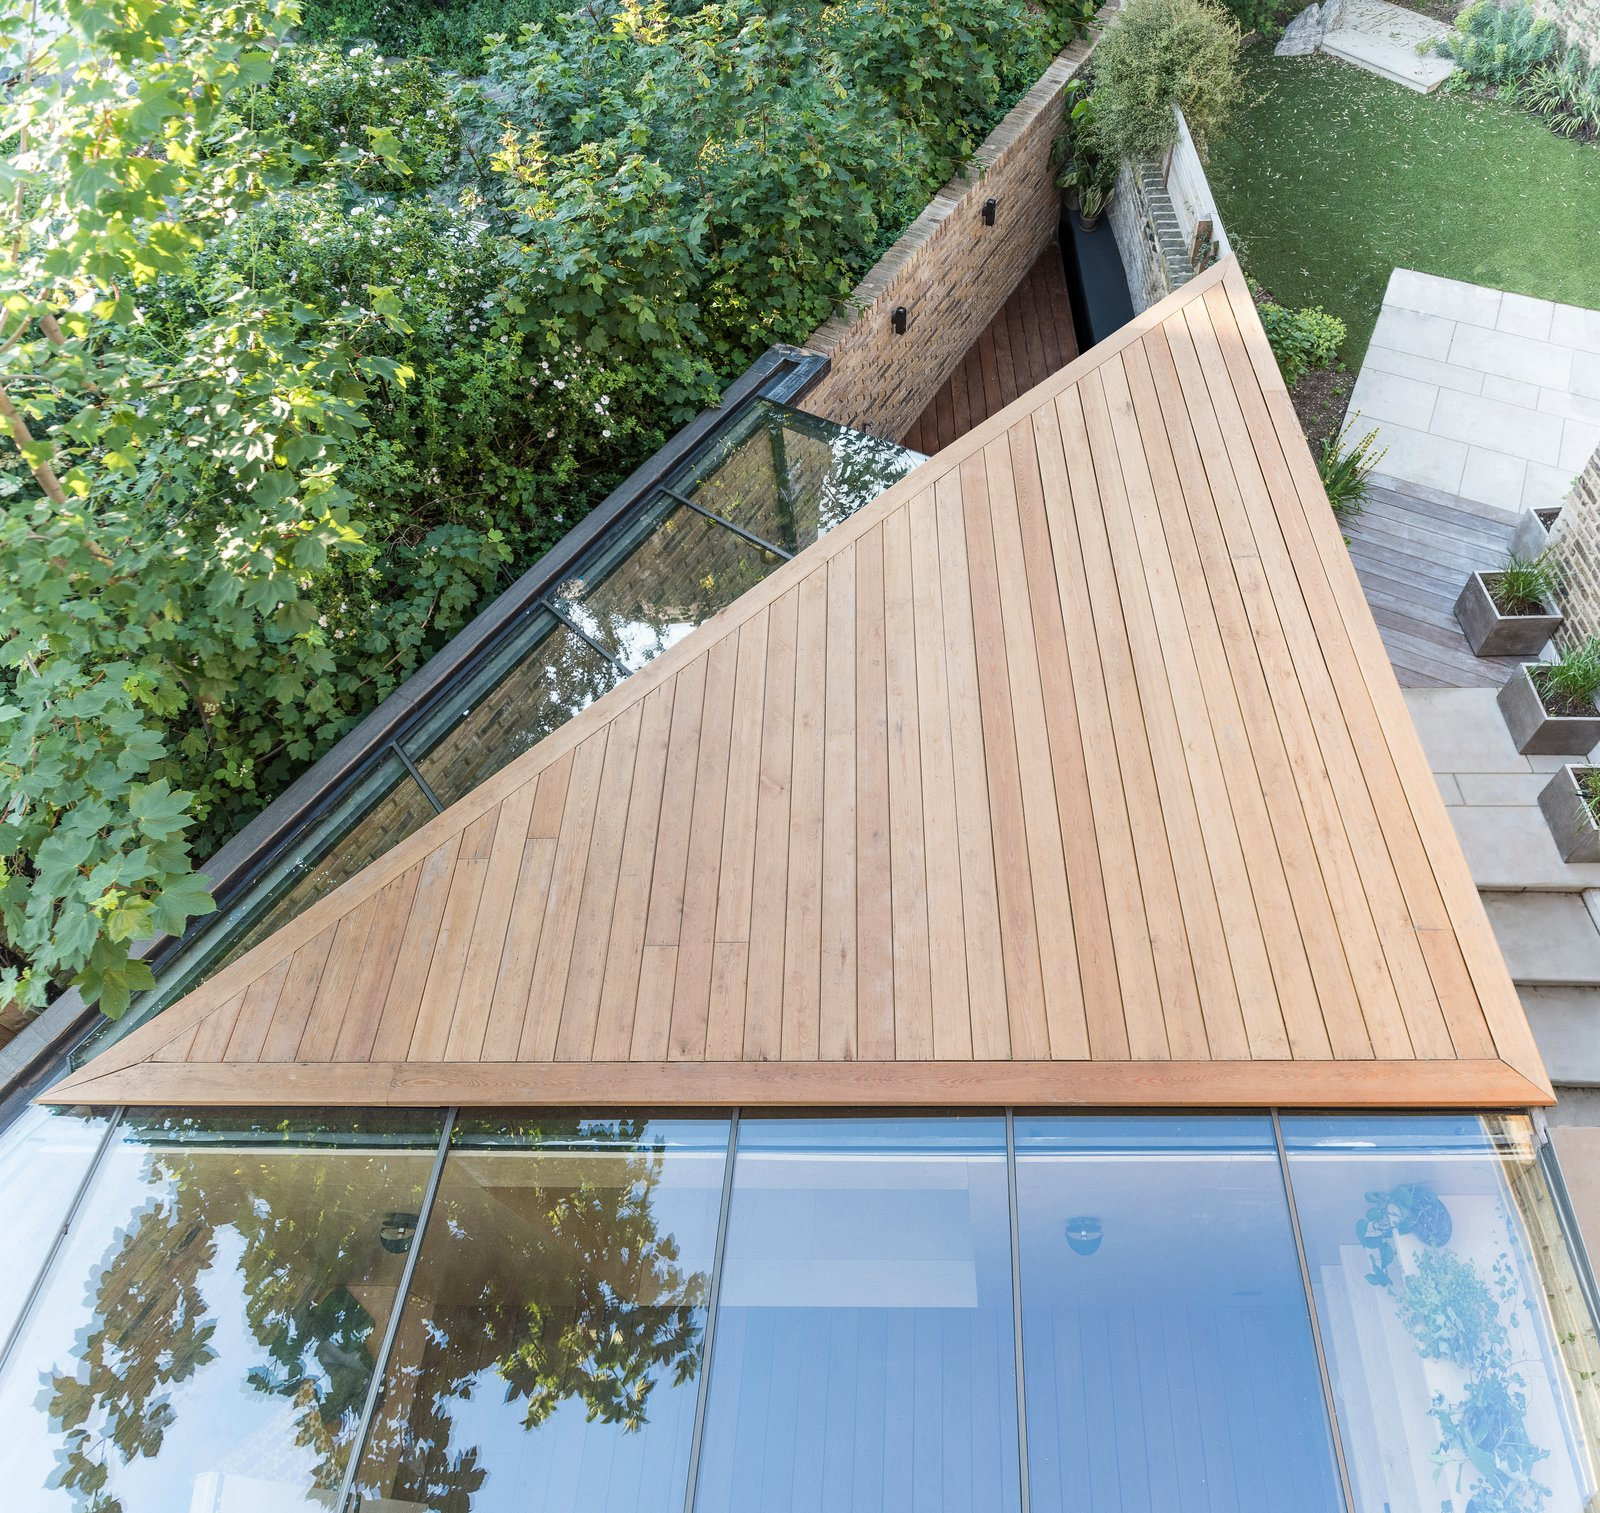 Outdoor, Decking Patio, Porch, Deck, Back Yard, Small Patio, Porch, Deck, Wood Patio, Porch, Deck, Rooftop, and Garden An overhead view of the extension.  Photos from A Crafty Triangular Addition Carves Out Office Space in a London Backyard